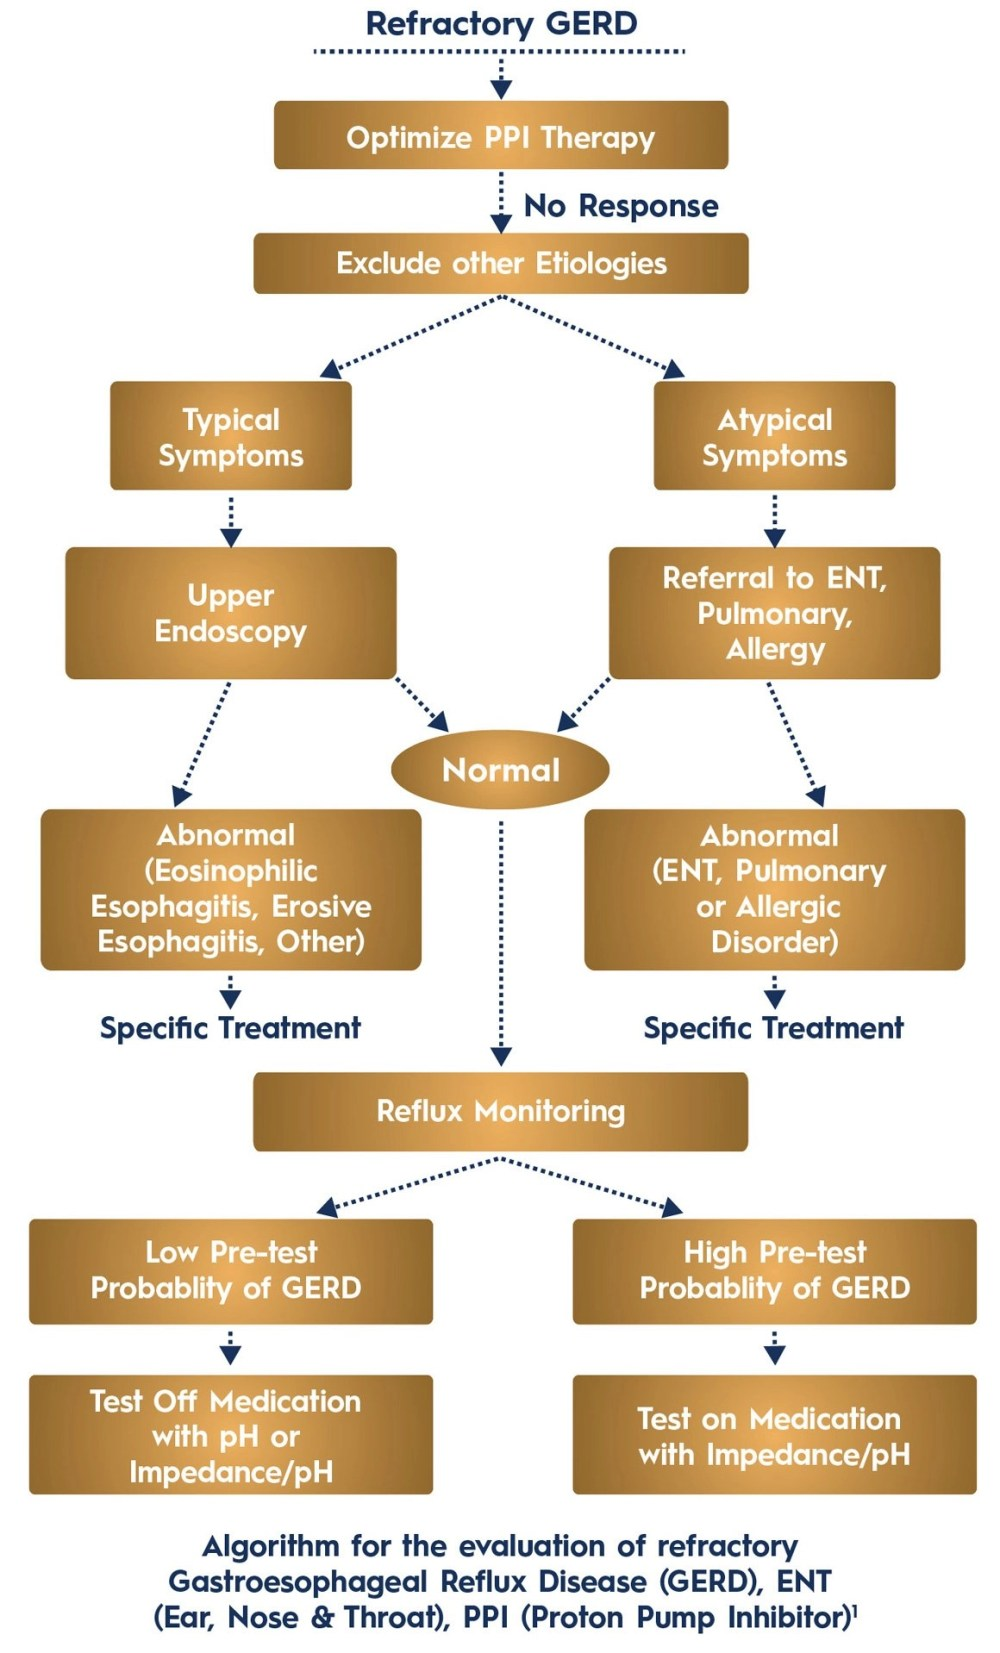 medium resolution of acg guideline algorithm